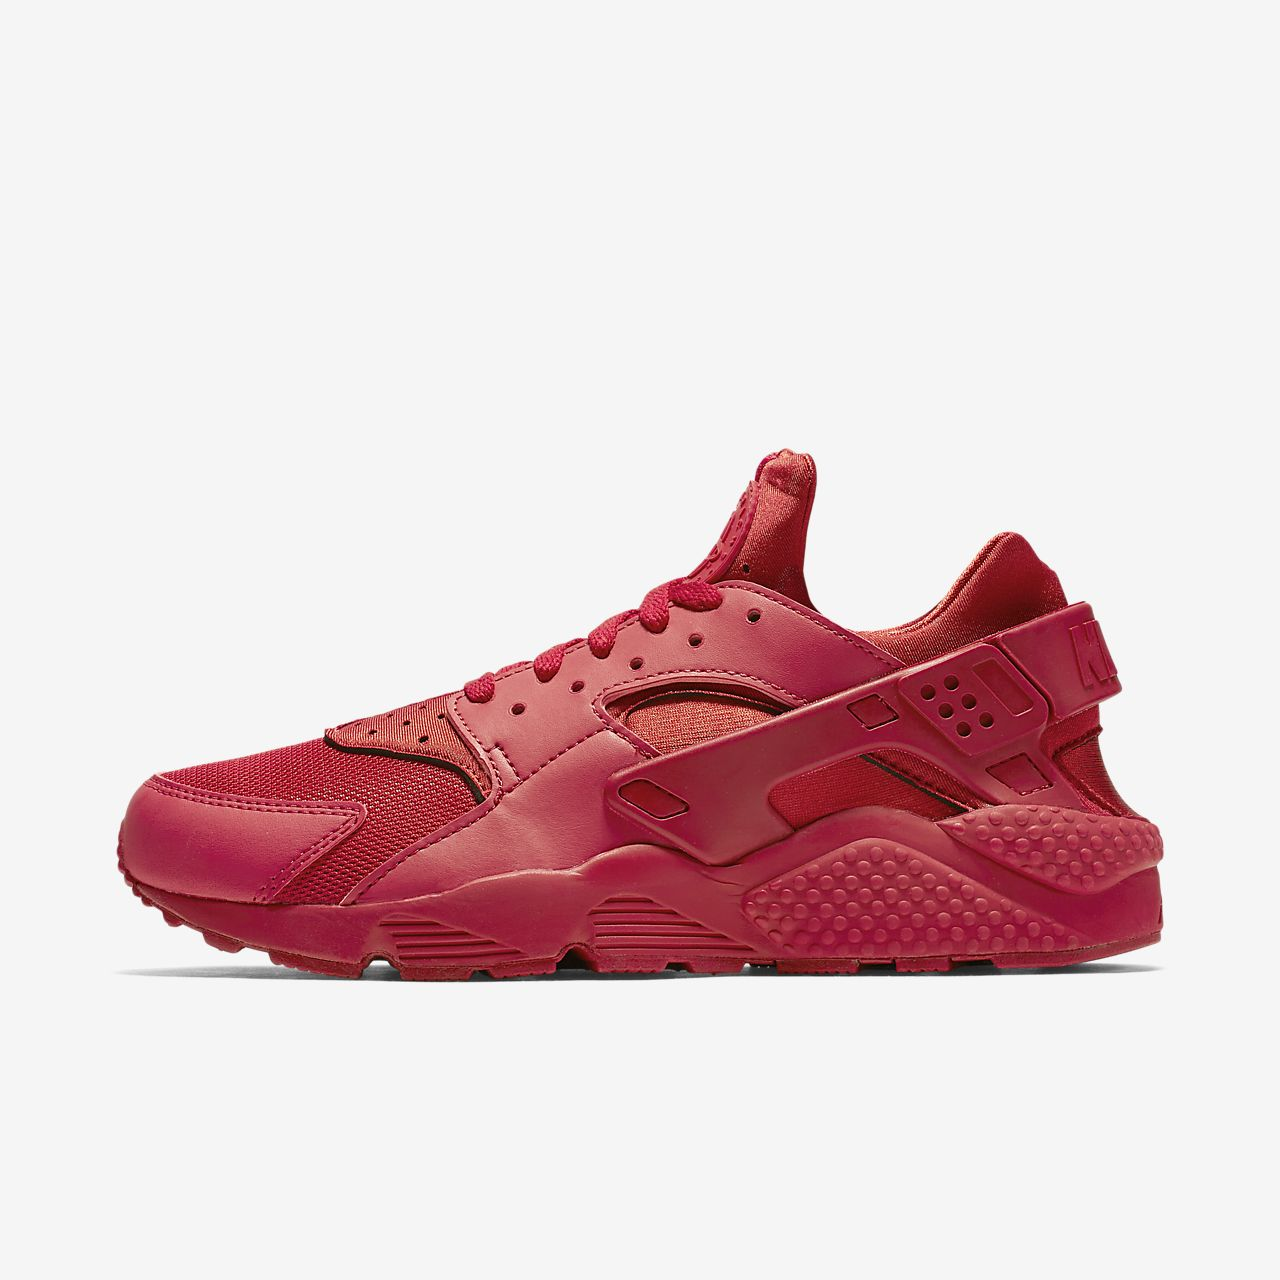 0c1227529ce90 Nike Air Huarache Men s Shoe. Nike.com